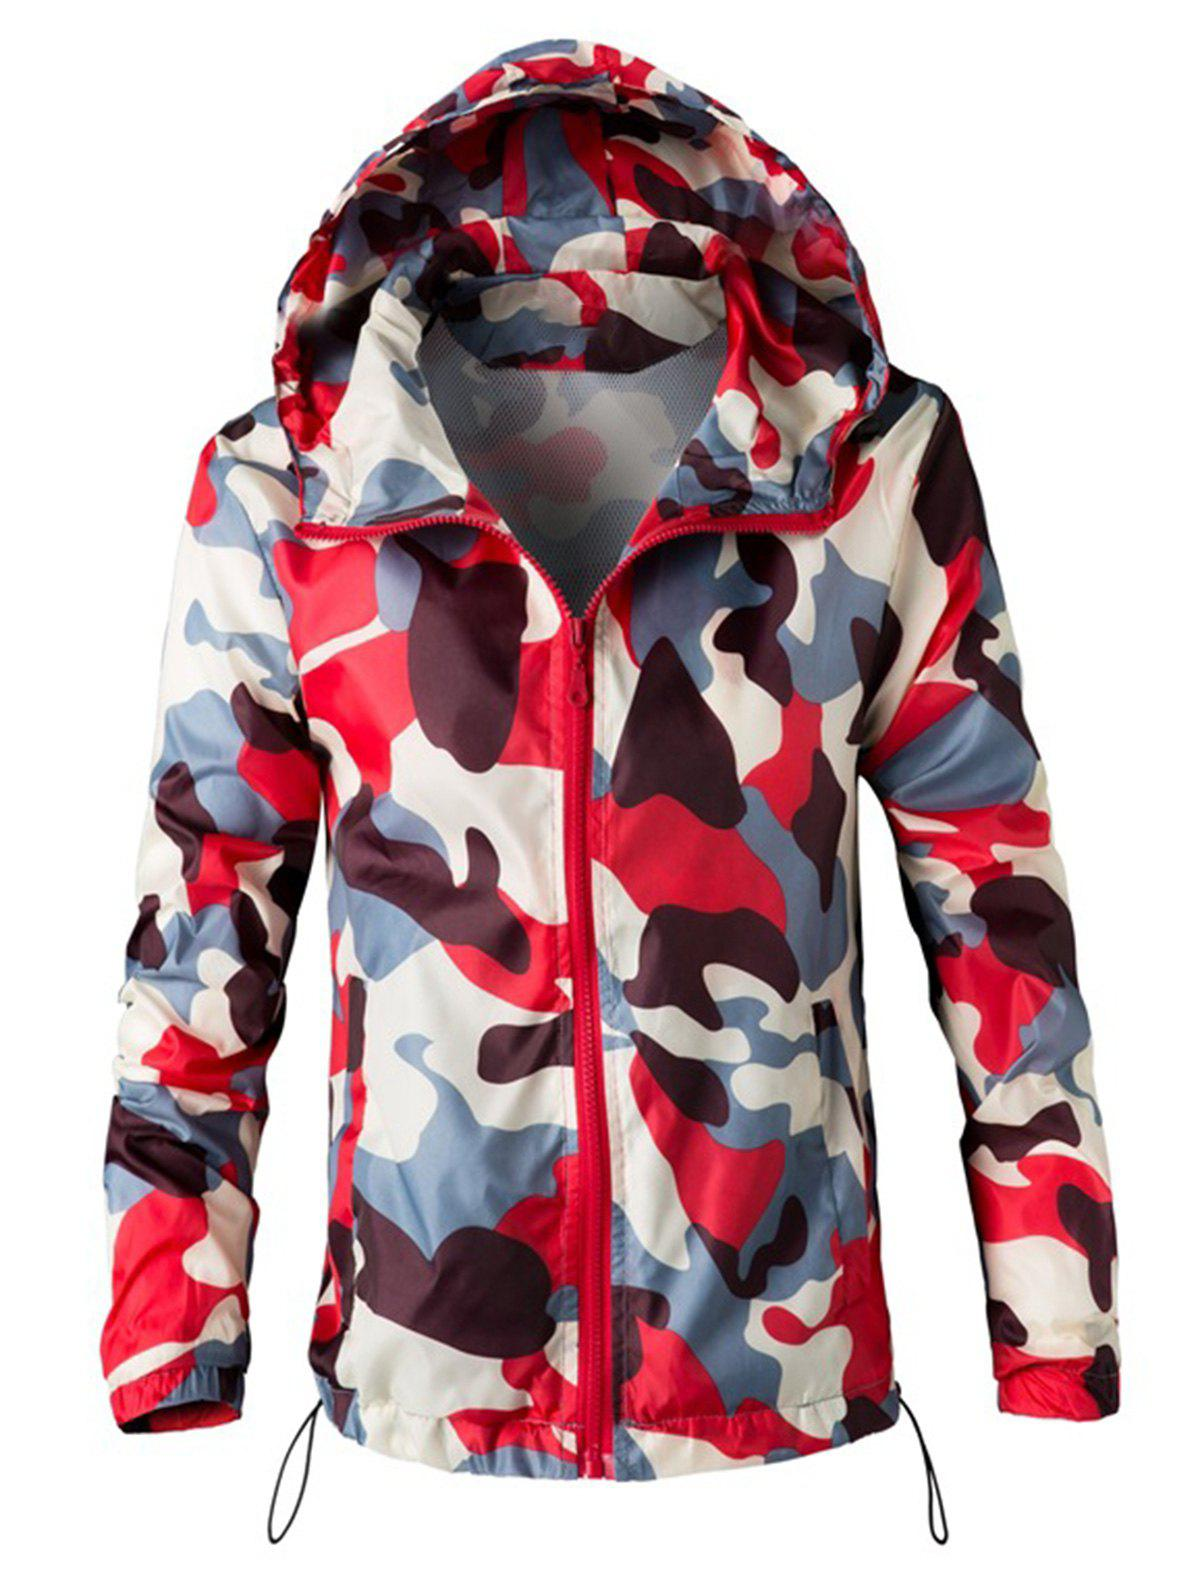 Fashion Mesh Lining Camouflage Zip Up Windbreaker Jacket